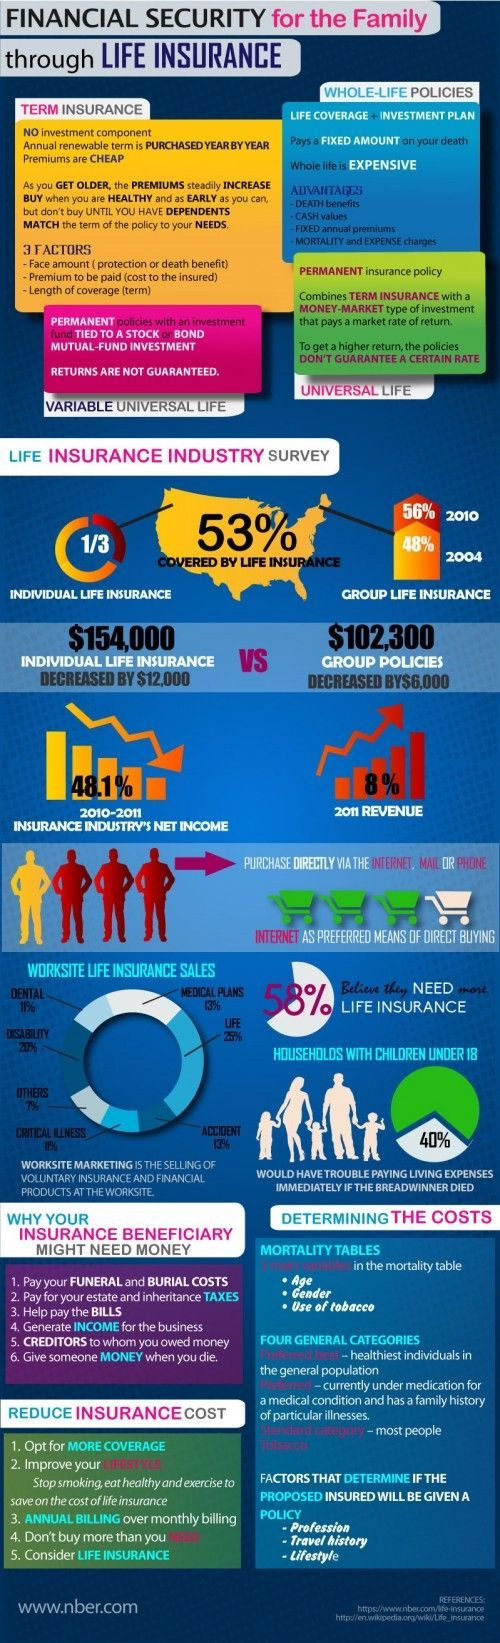 Life Insurance Quotes Whole Life All About Life Insurance  Infographic On Httpwww